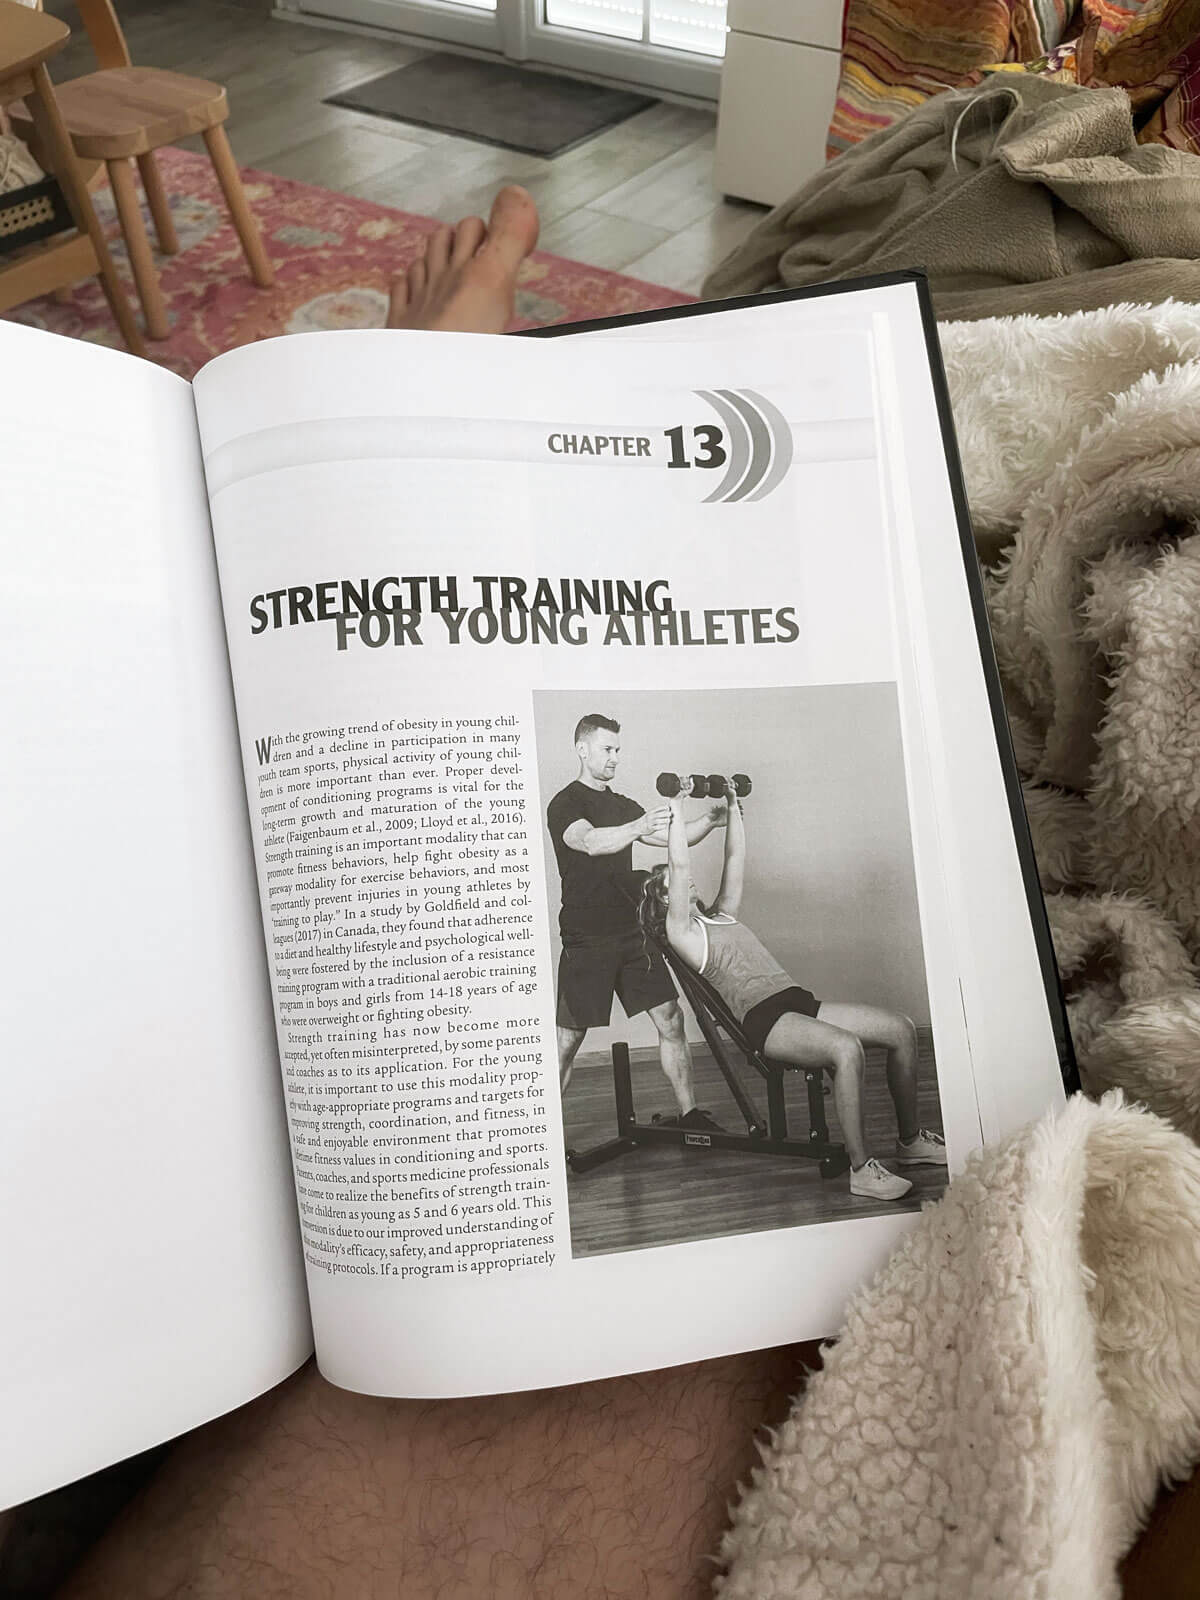 Science and Practice of Strength Training by Vladimir Zatsiorsky - Chapter 13